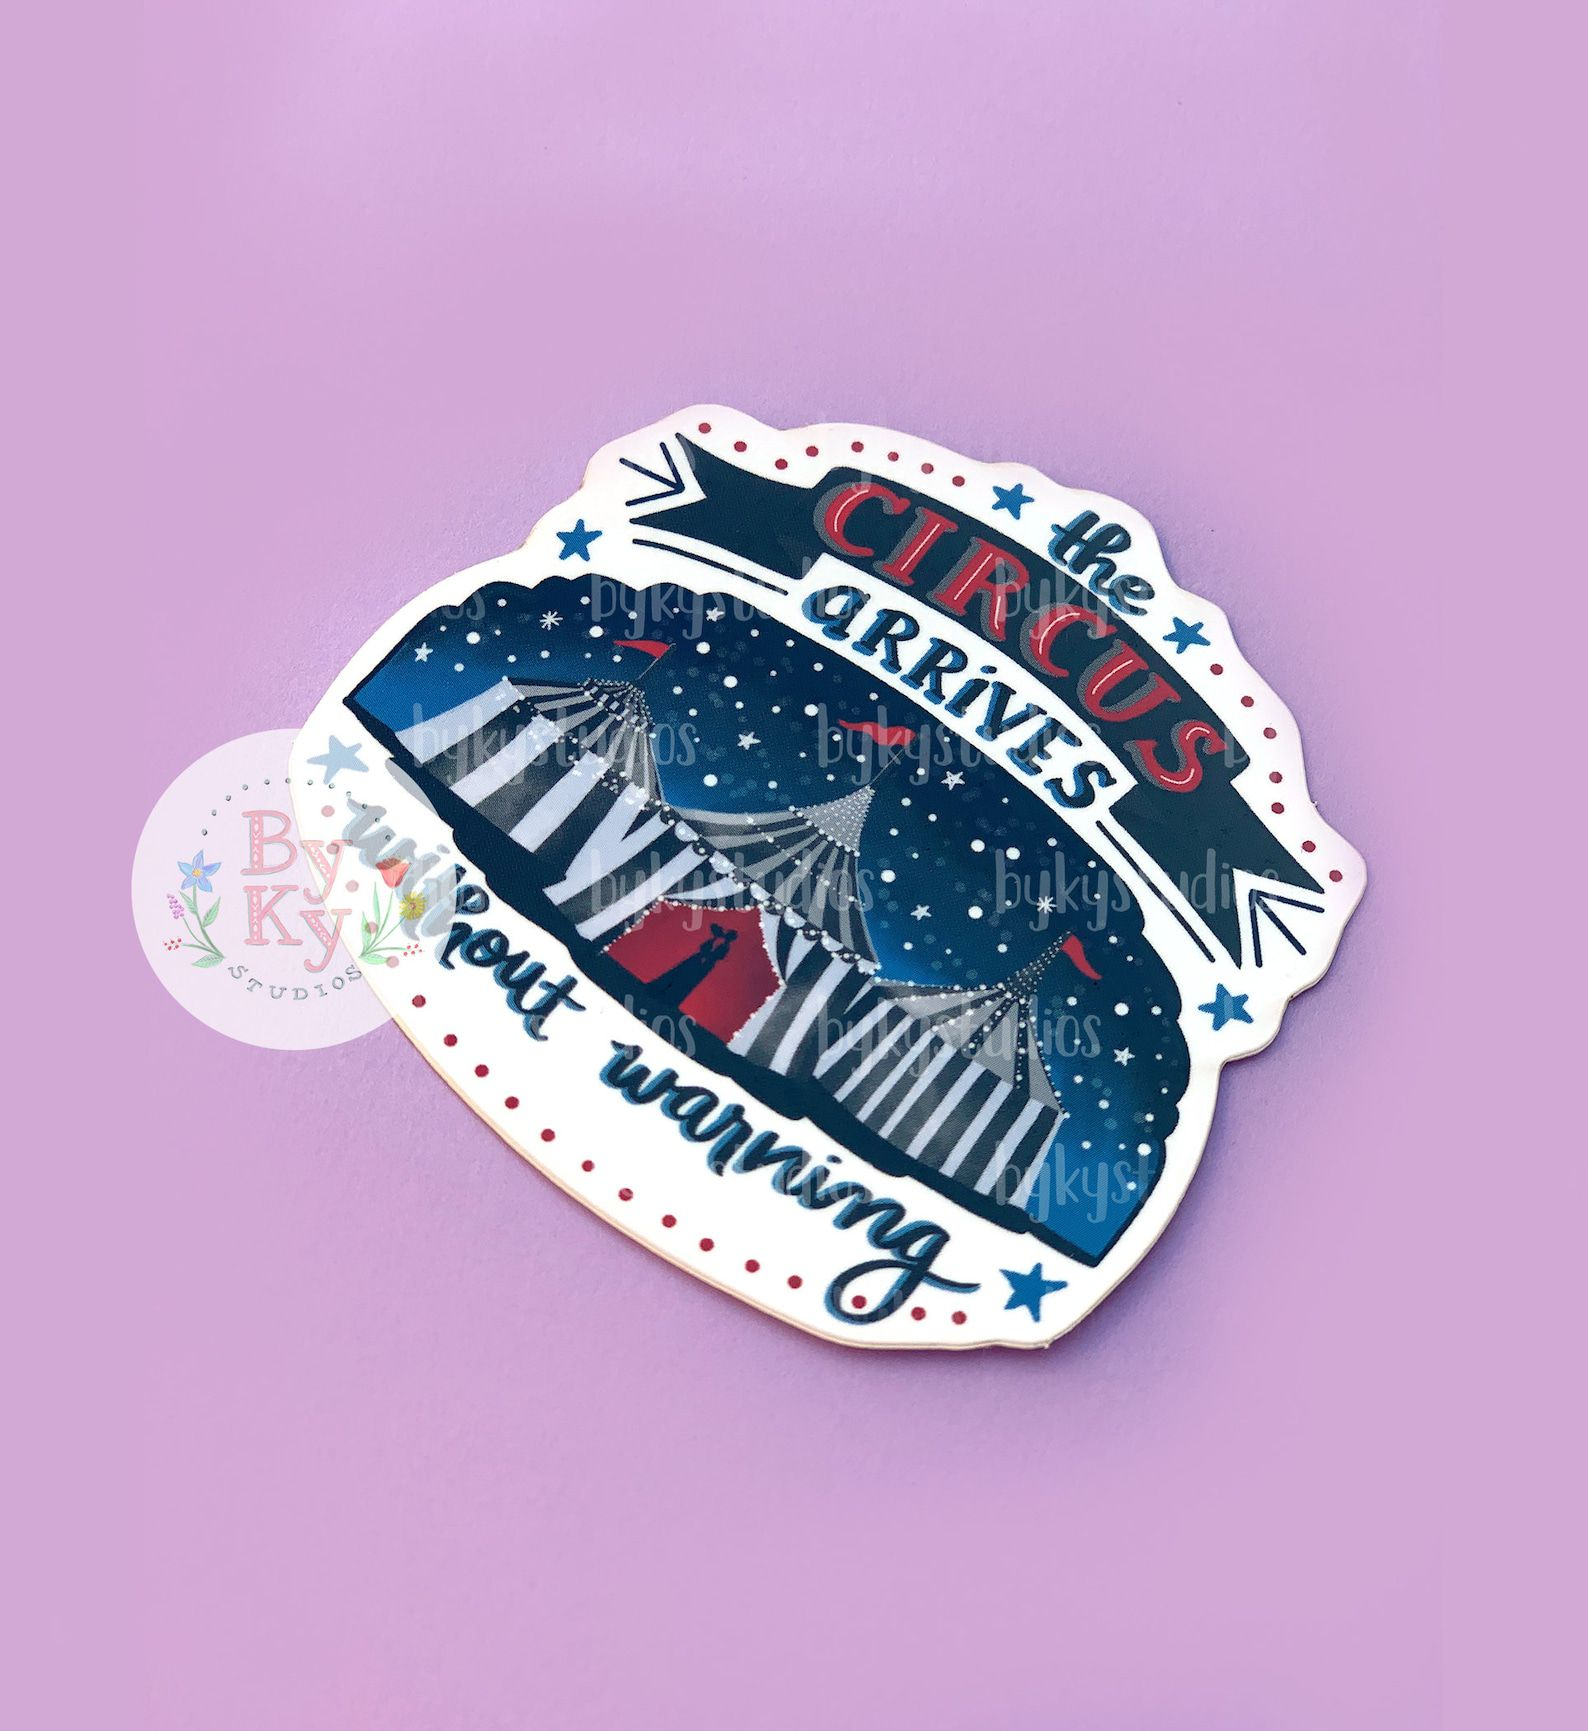 """A sticker depicting an image of a circus tent with the words """"The circus arrives without warning."""""""